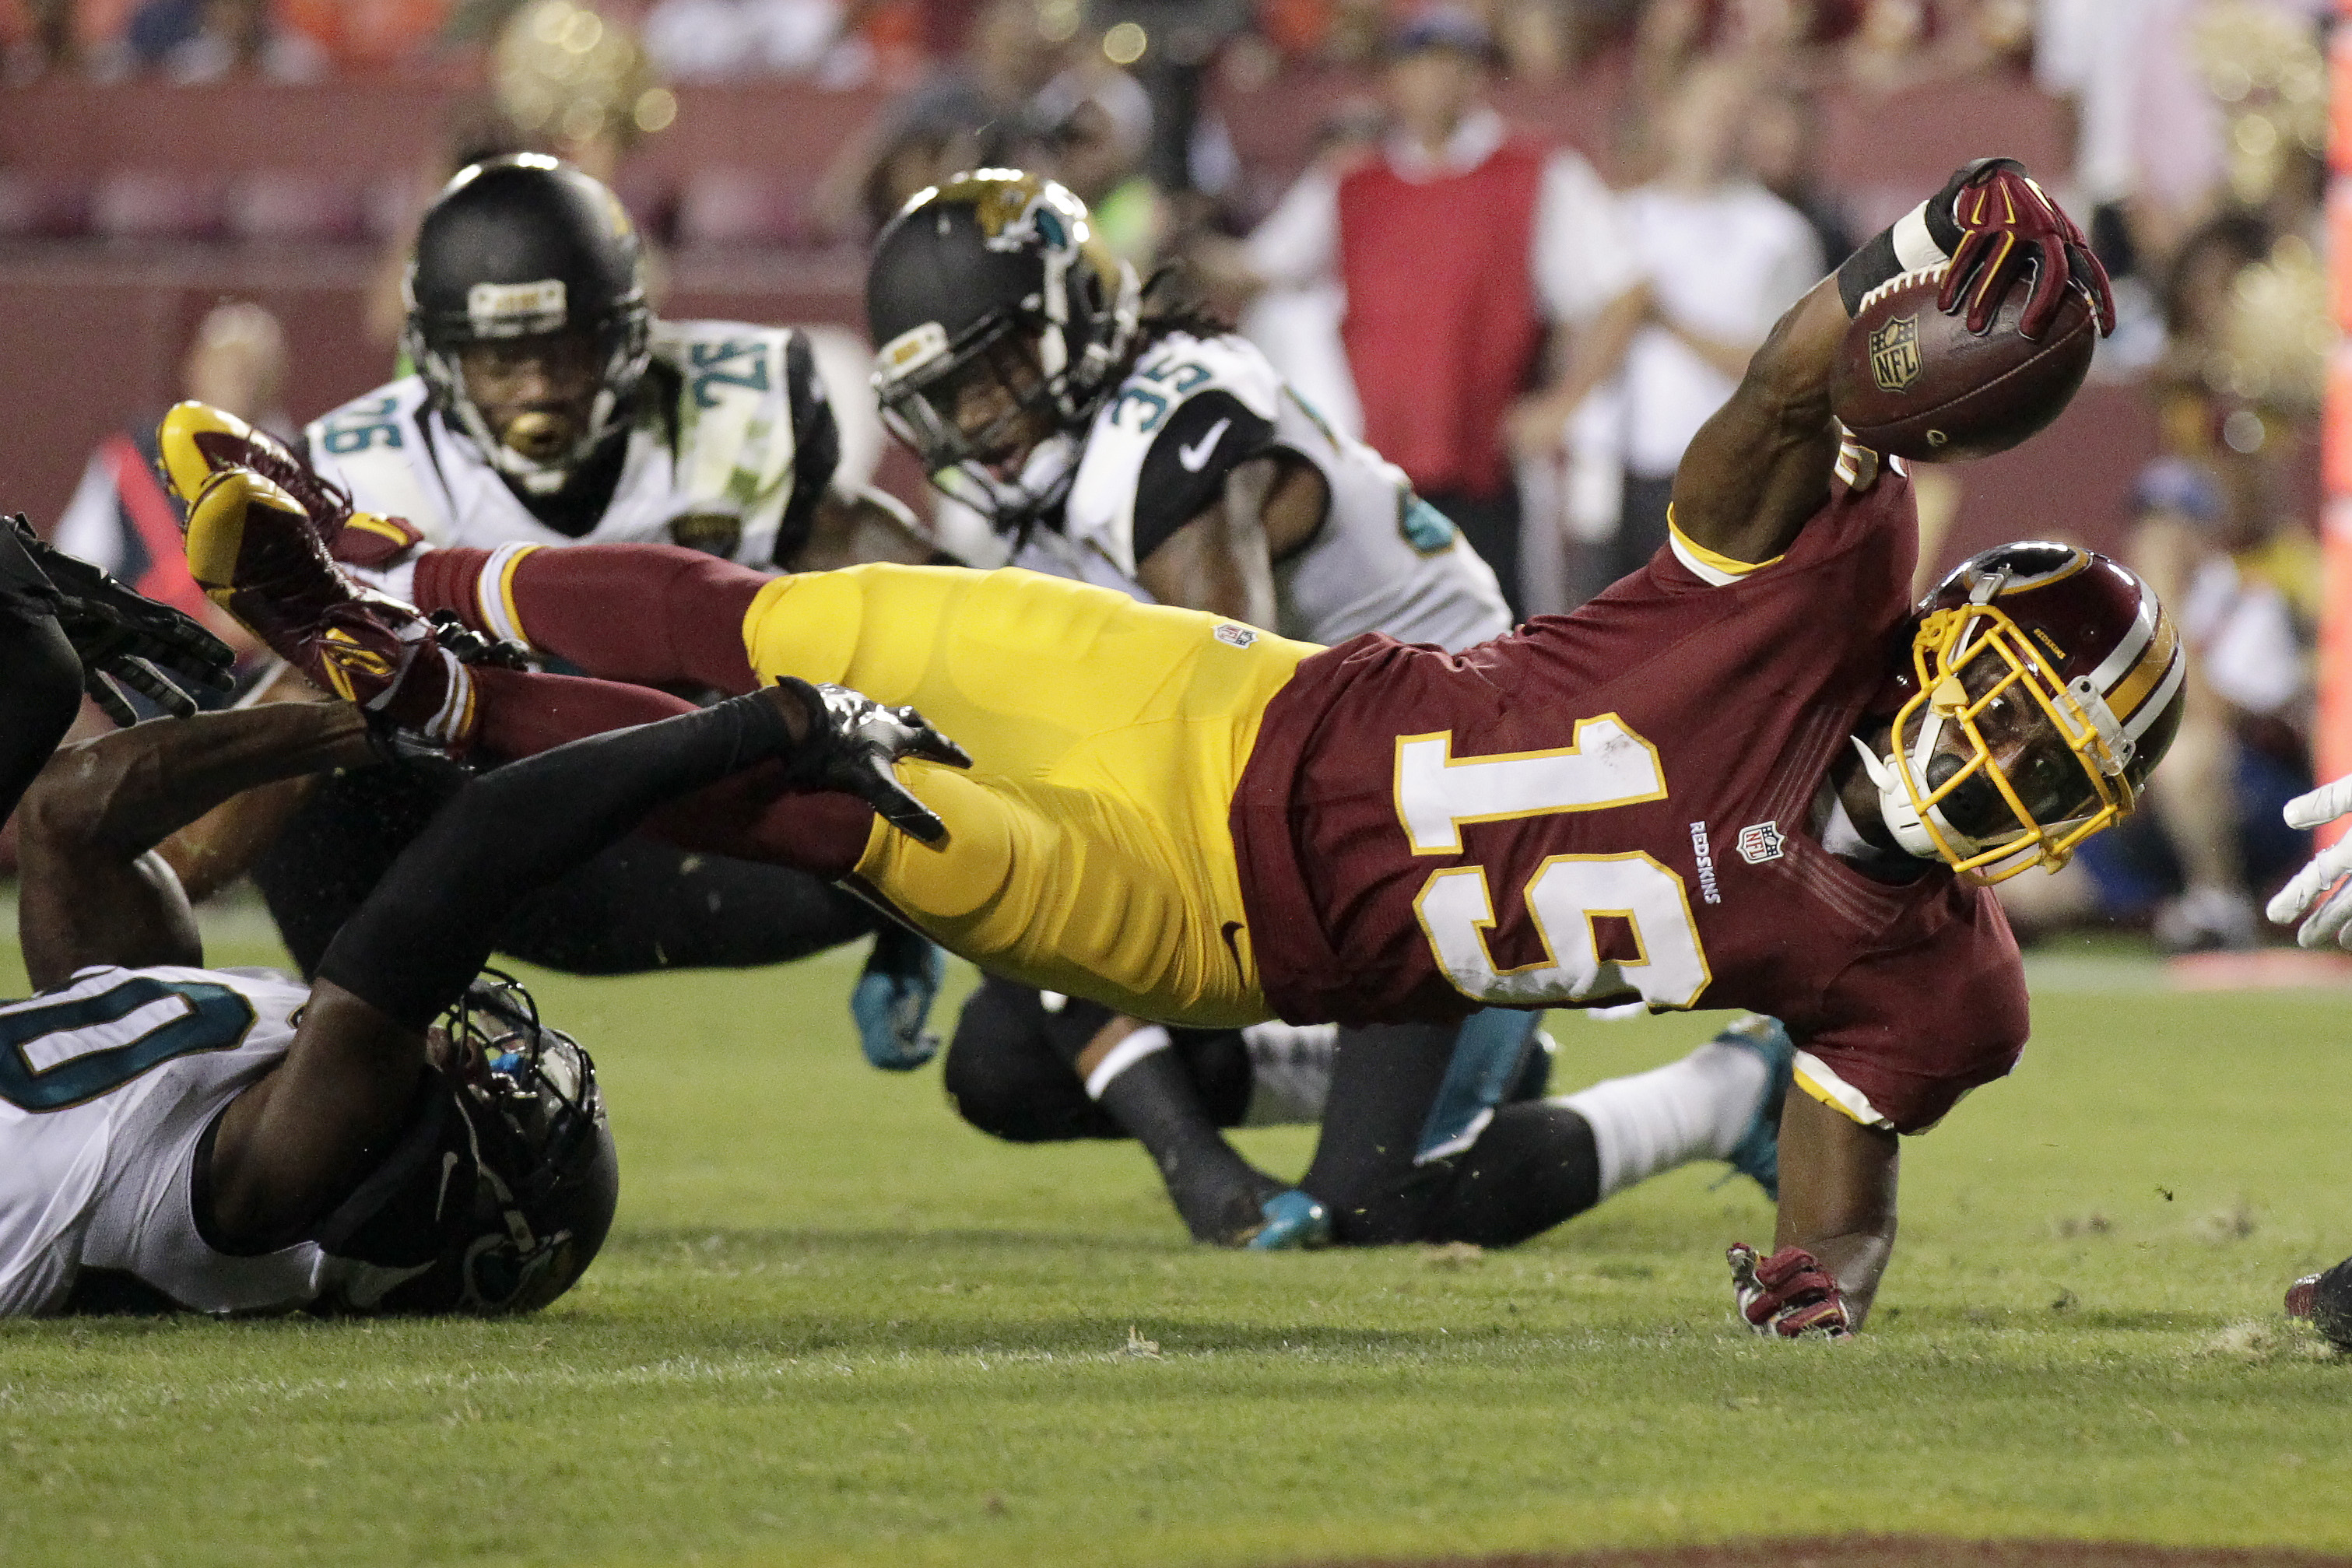 Washington Redskins wide receiver Rashad Ross (19) reaches into the end zone for a touchdown as Jacksonville Jaguars cornerback Rashaad Reynolds (40) hangs on during the first half of an NFL preseason football game in Landover, Md., Thursday, Sept. 3, 201